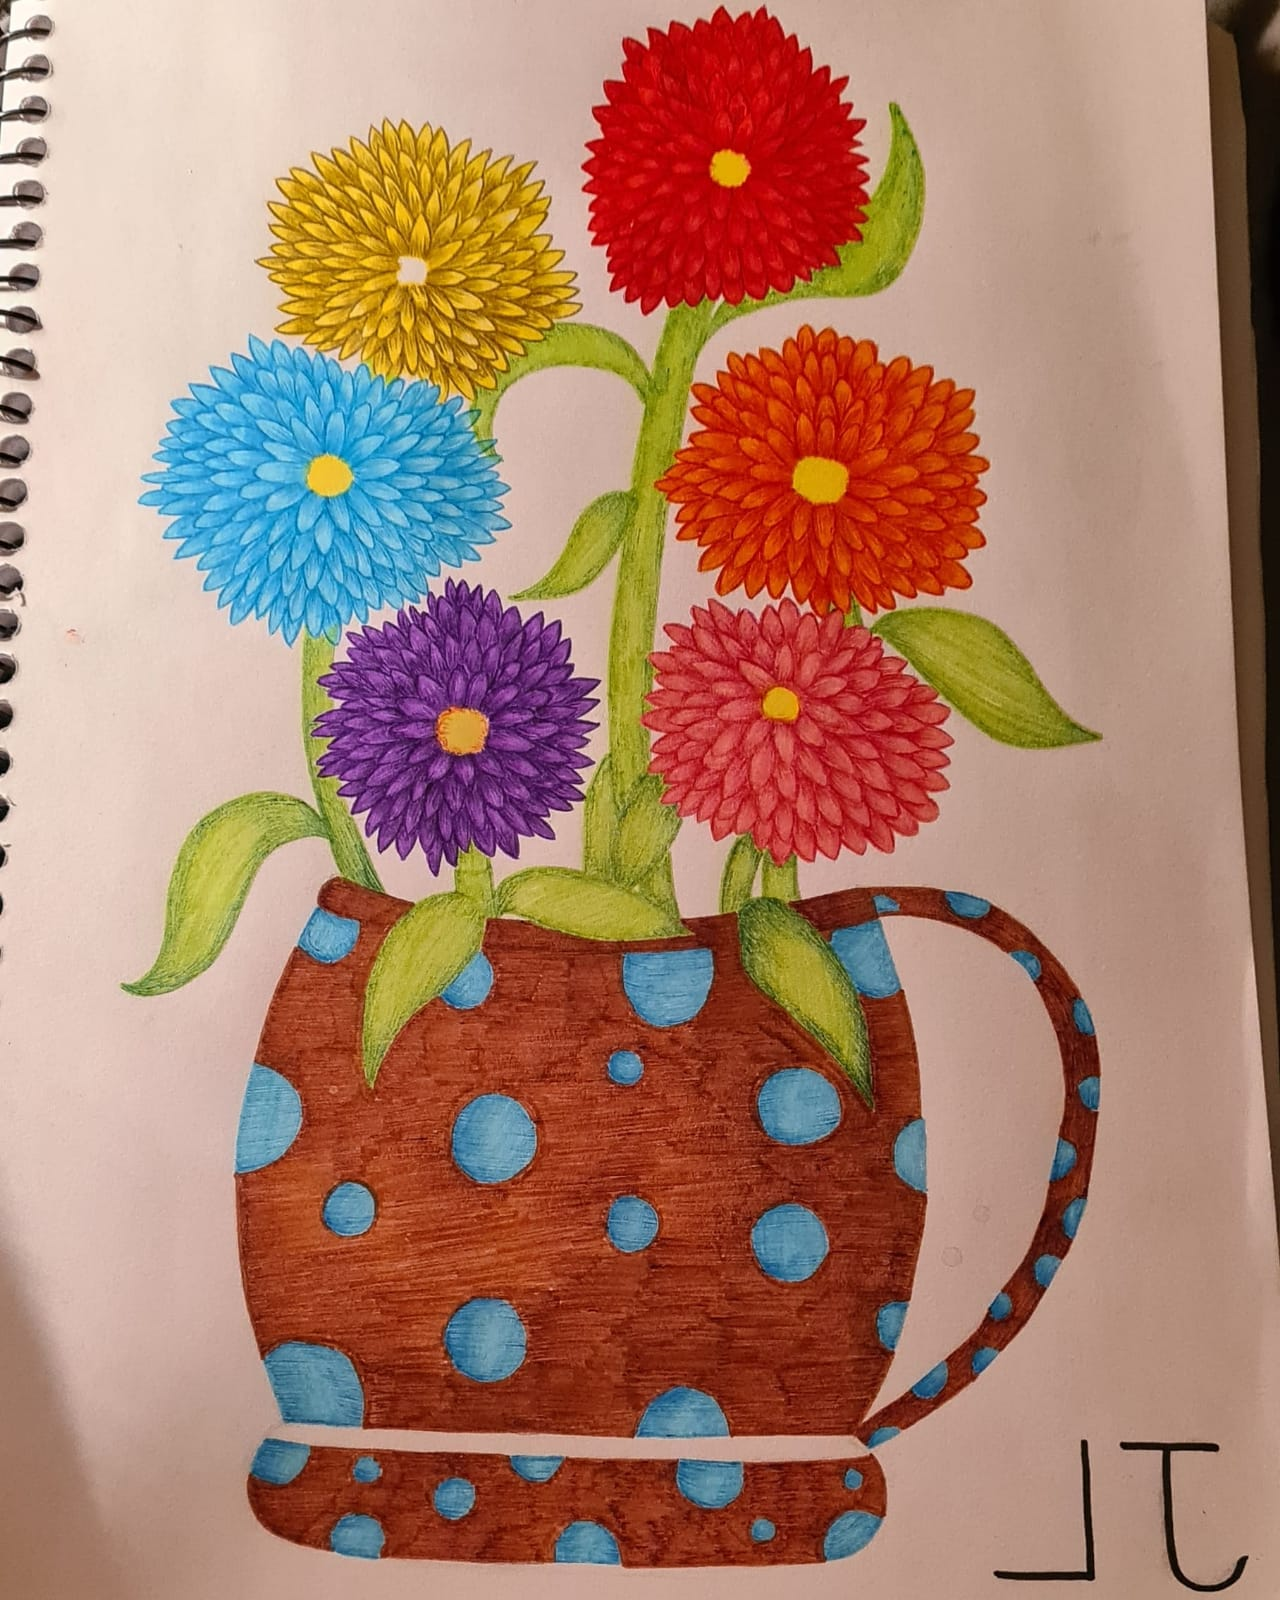 This is a picture of a red, yellow, orange, pink, light blue and purple folk style flowers which are in a brown jug that has a light blue dot pattern on it. At the bottom right corner of the picture their are the initials L and J that have been drawn backwards in black pen.